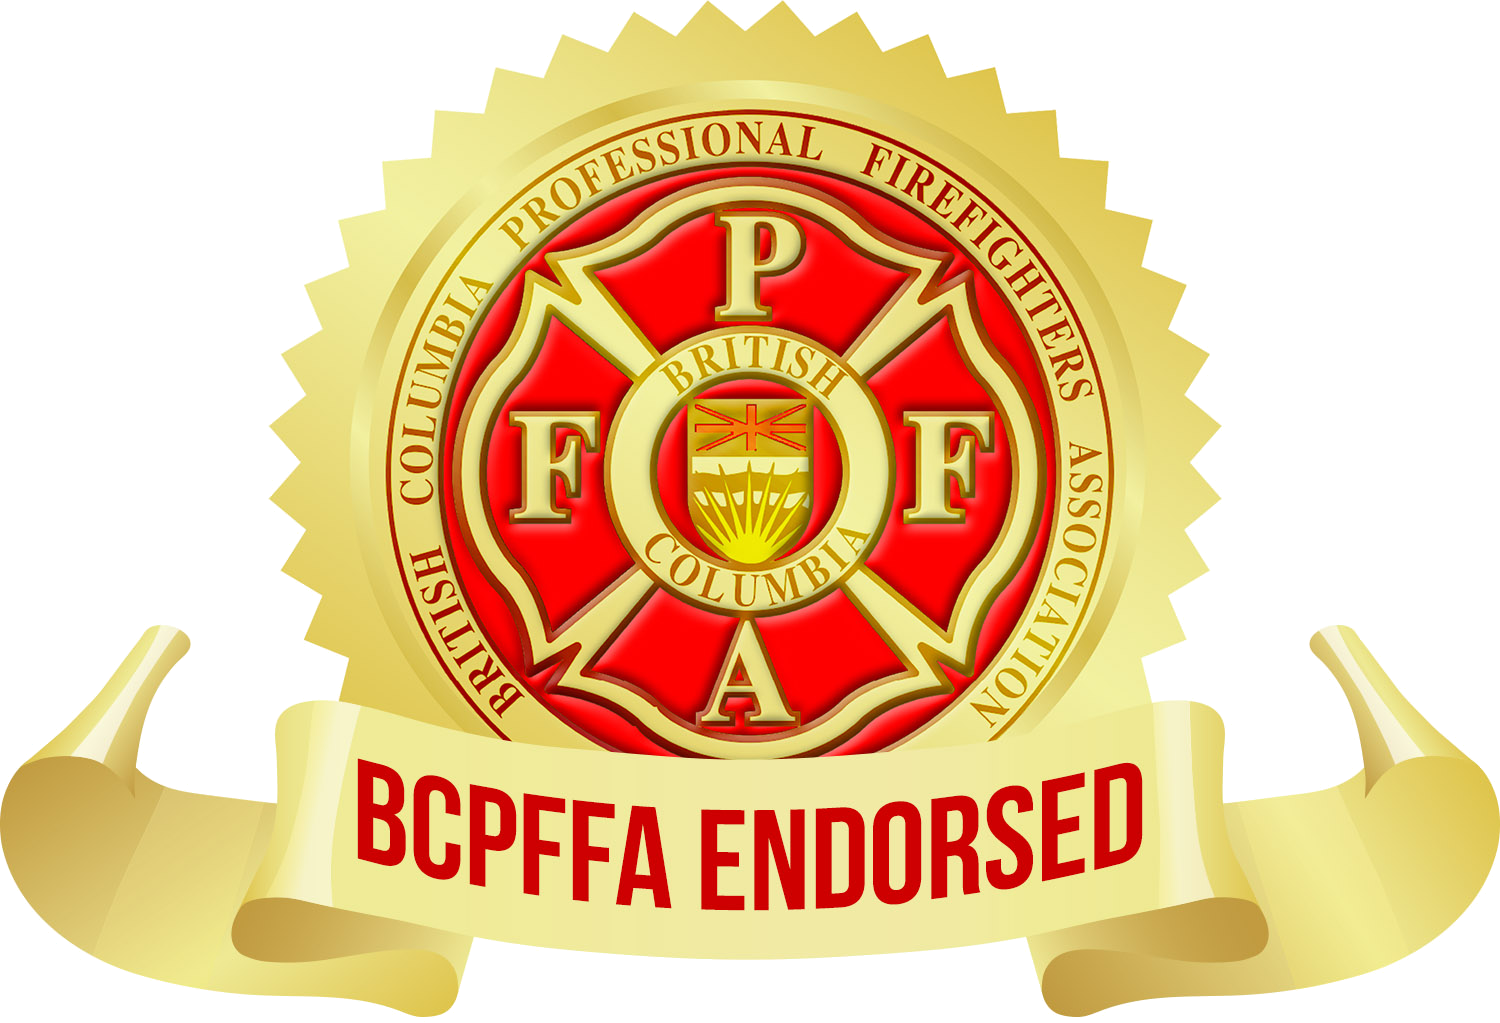 I am endorsed by the British Columbia Professional Firefighters Association as a culturally-competent clinician.